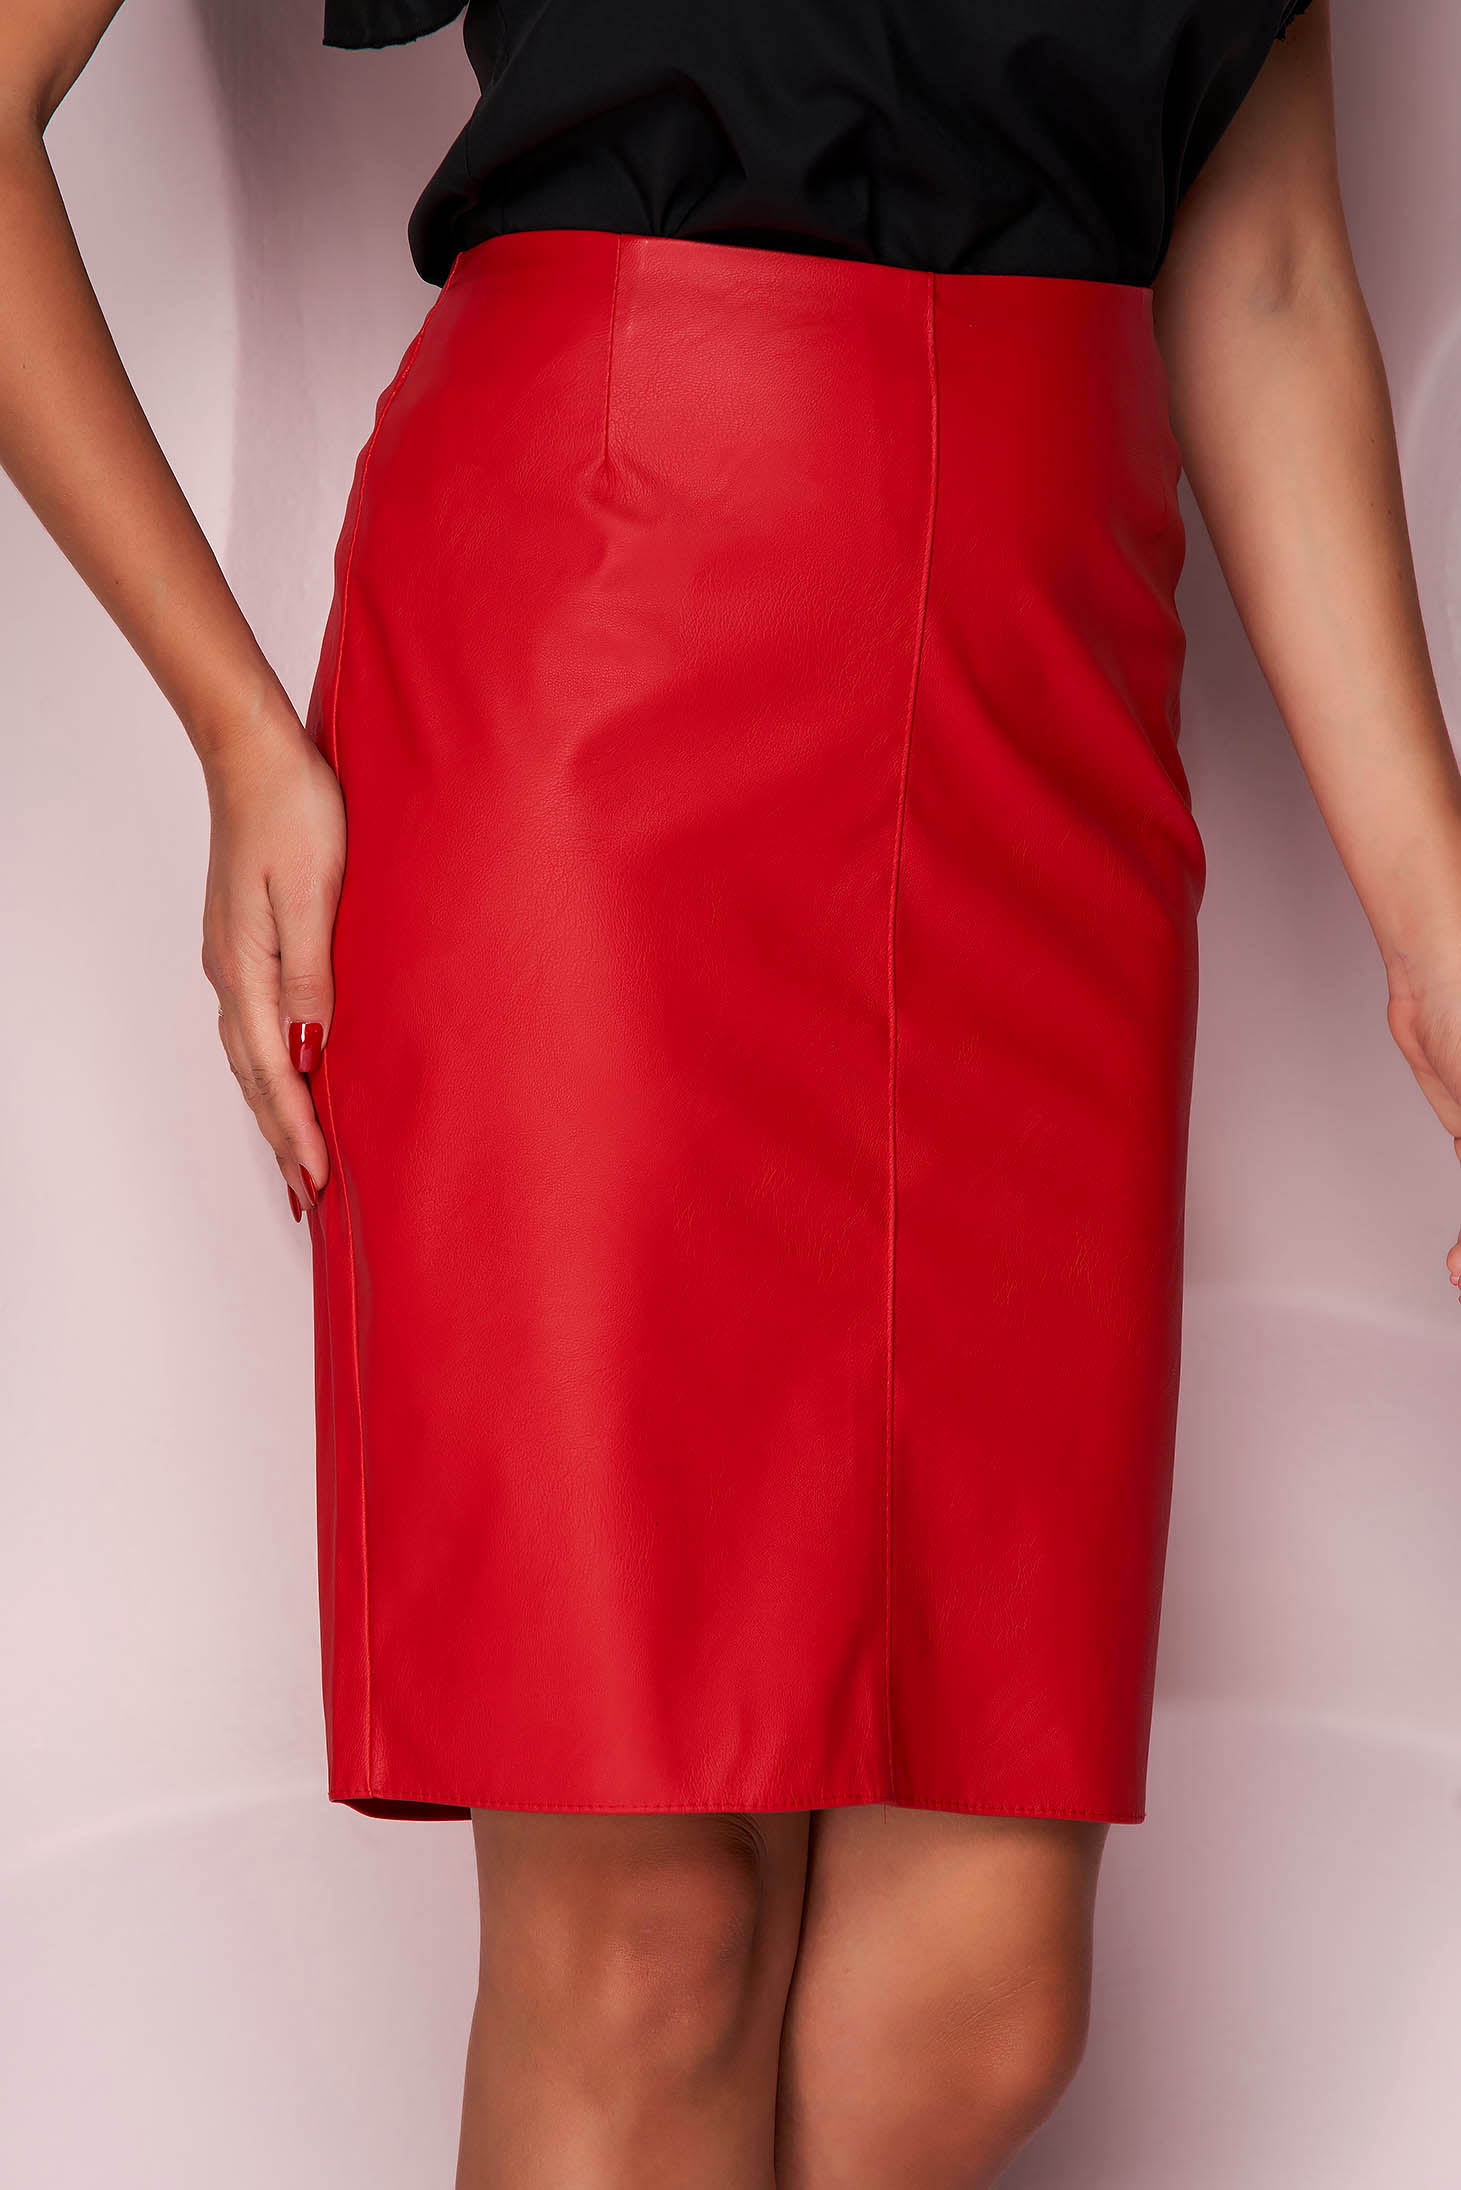 Red skirt short cut pencil from ecological leather office slightly elastic fabric